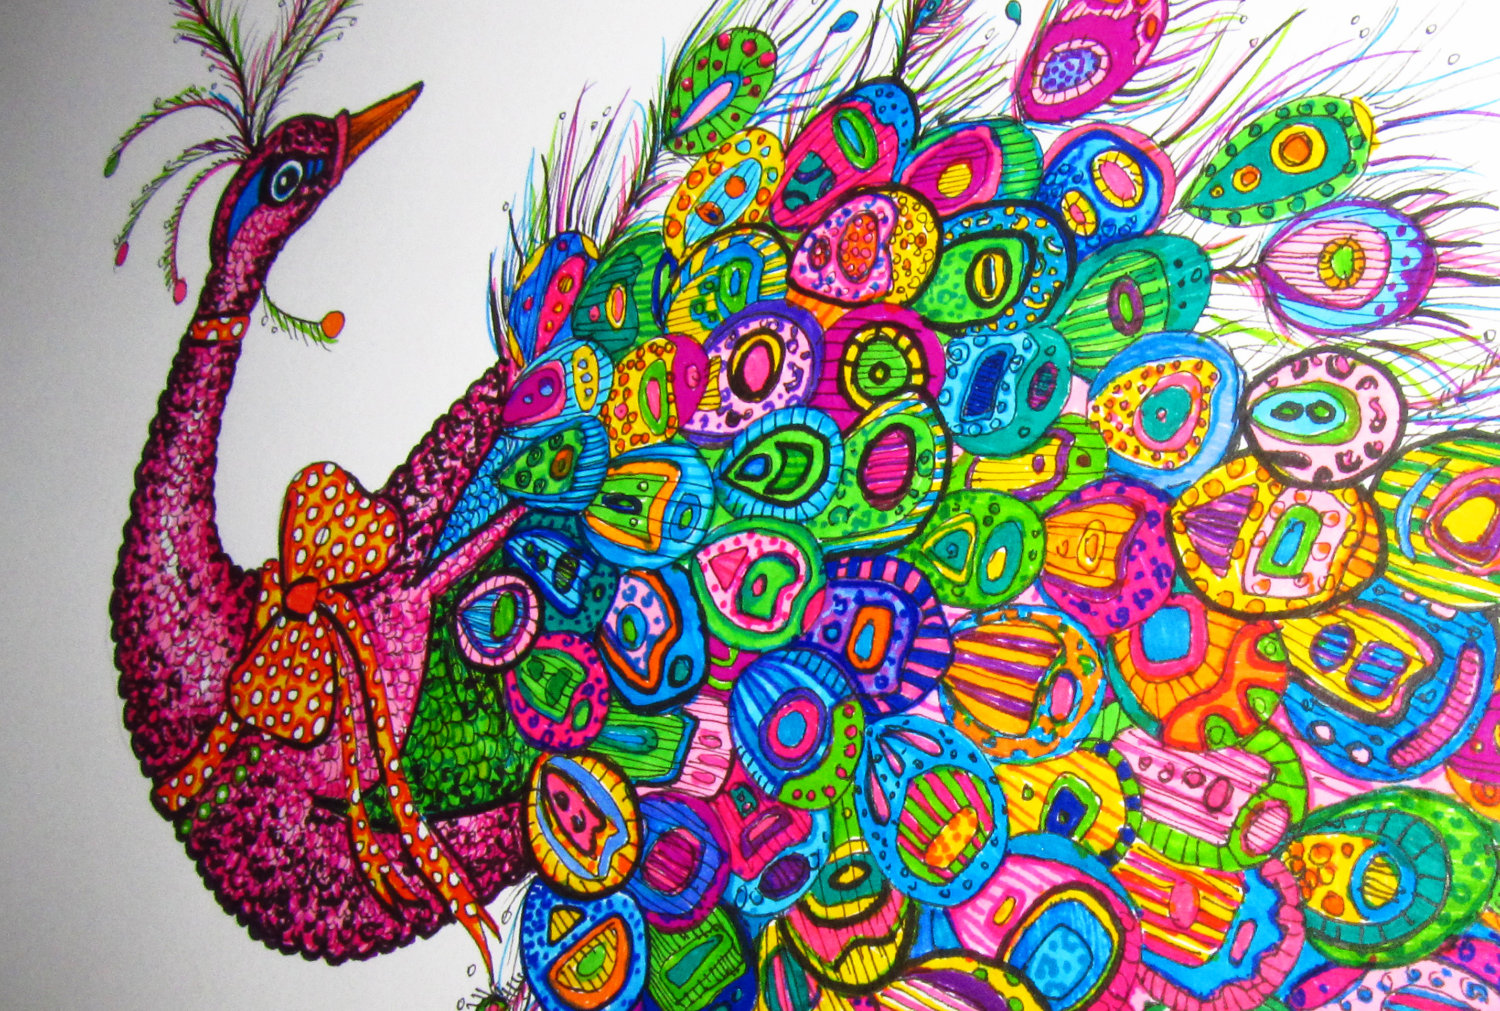 Drawn peacock colour full Colorful Shipping Drawing 4 klejonka